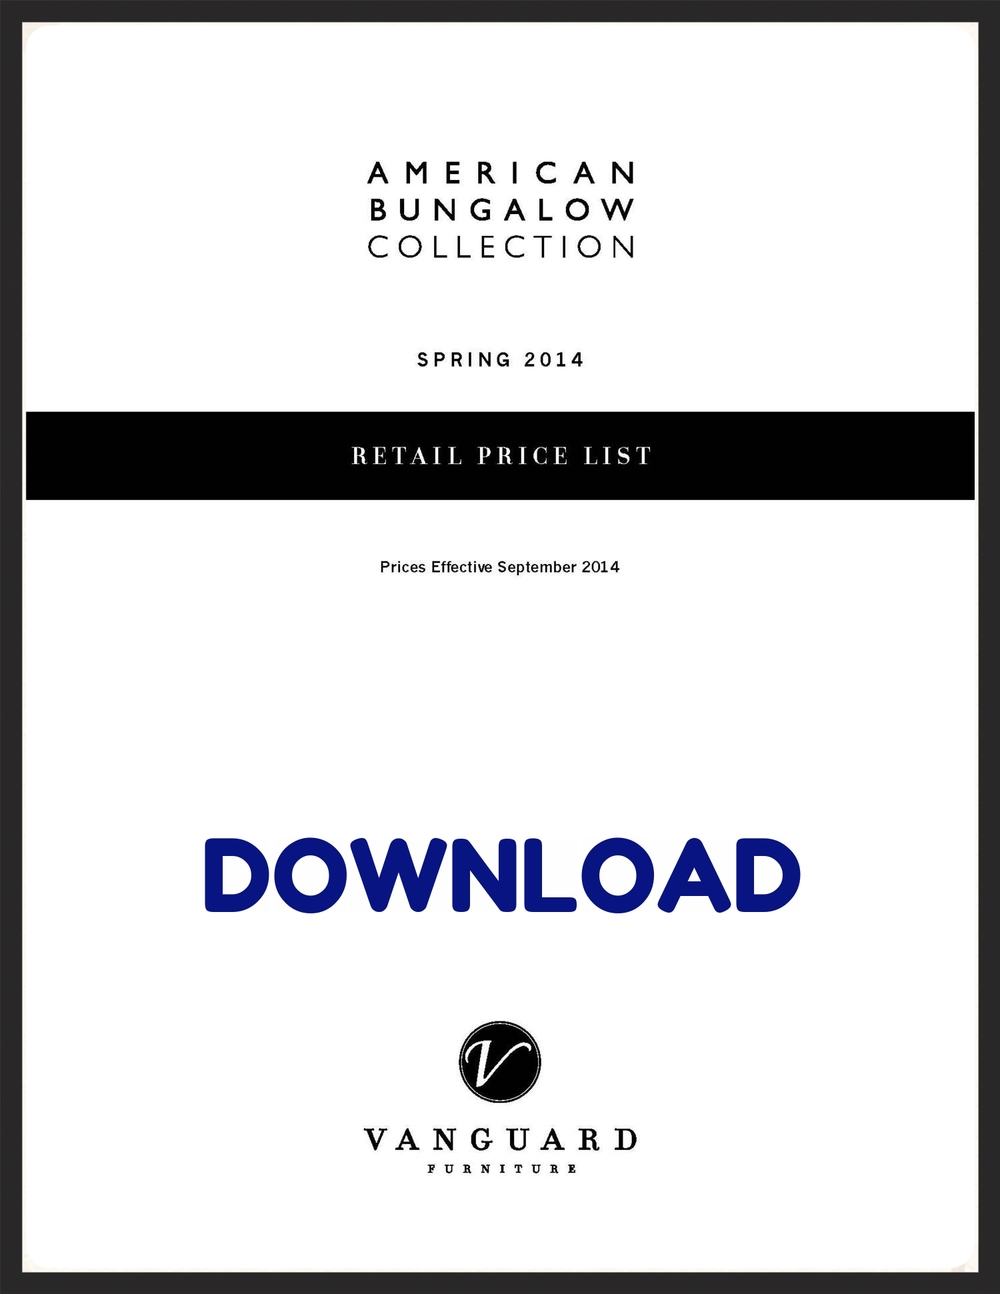 Vanguard's American Bungalow Retail Pricing 2014